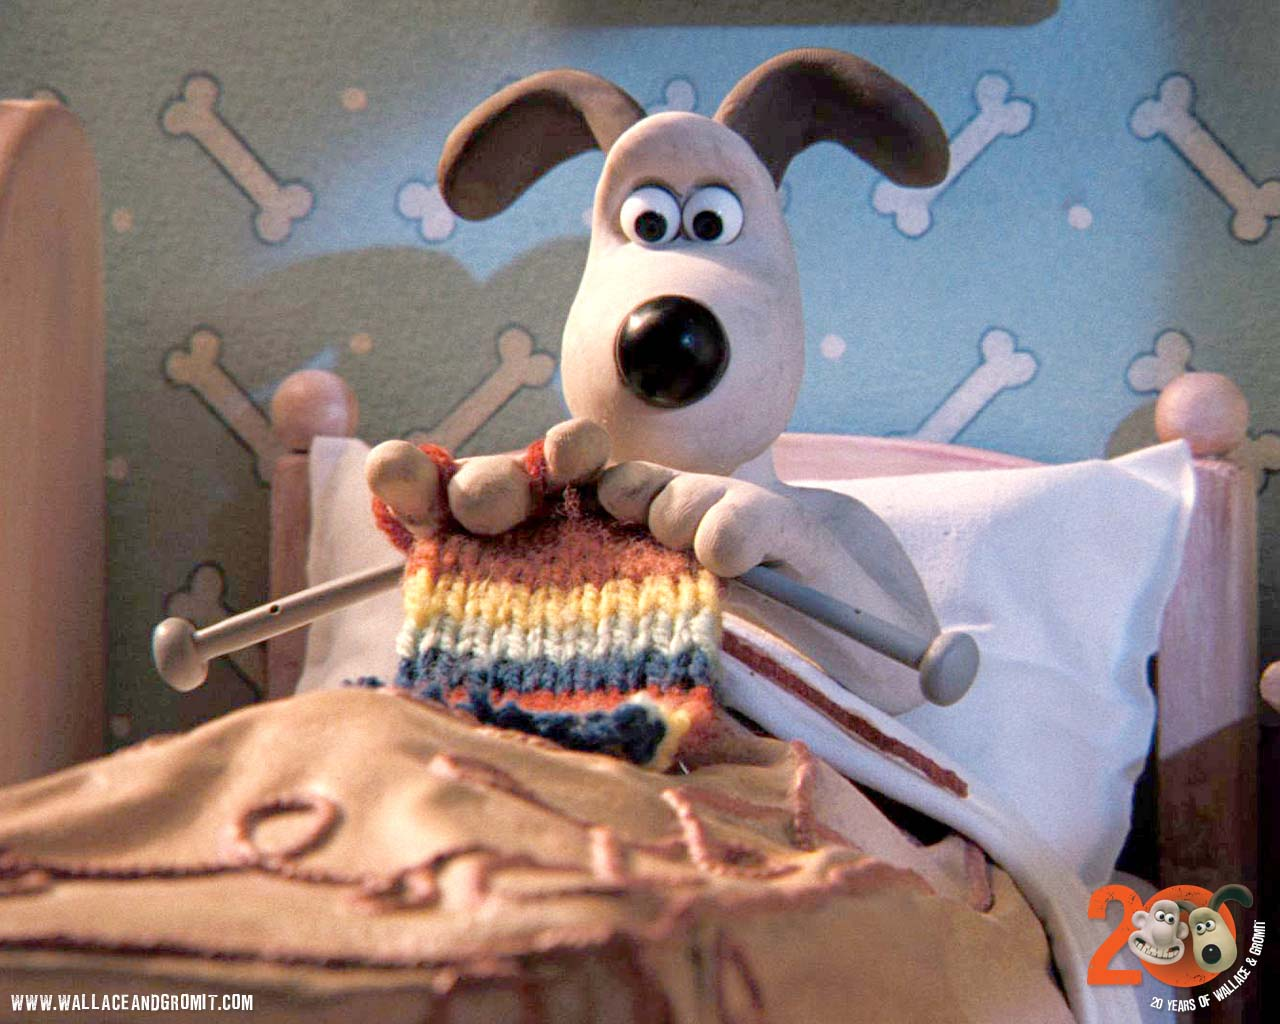 Wallace And Gromit Knitting Pattern : VIZIO BLOG: WALLACE & GROMIT: THE CURSE OF THE WERE-RABBIT